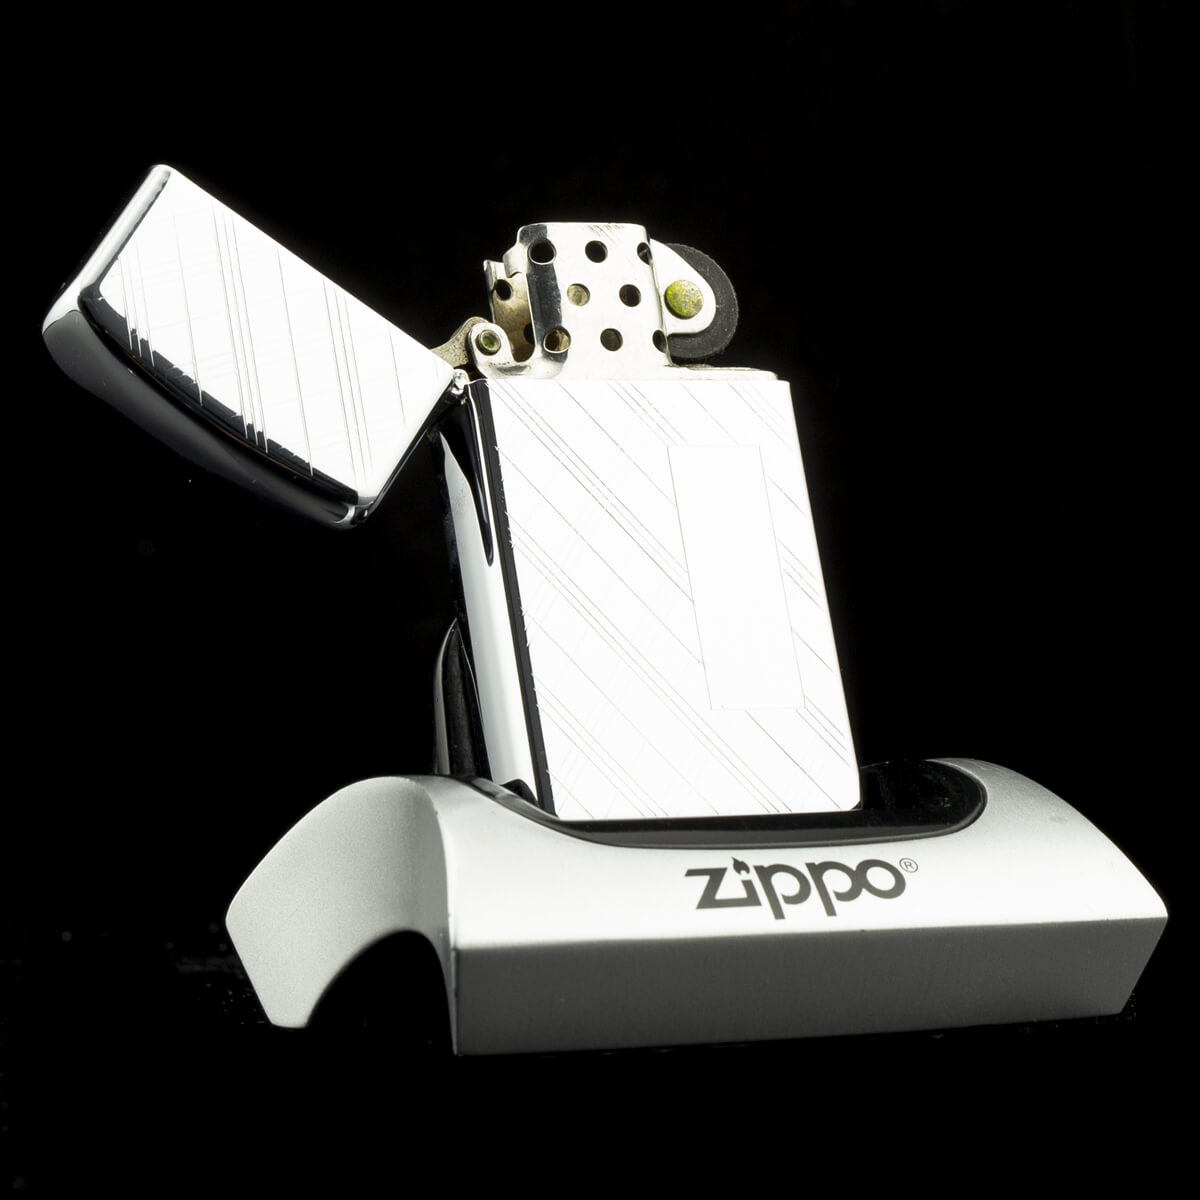 hot-quet-zippo-slim-striped-1966-8-gach-thang-soc-2-mat